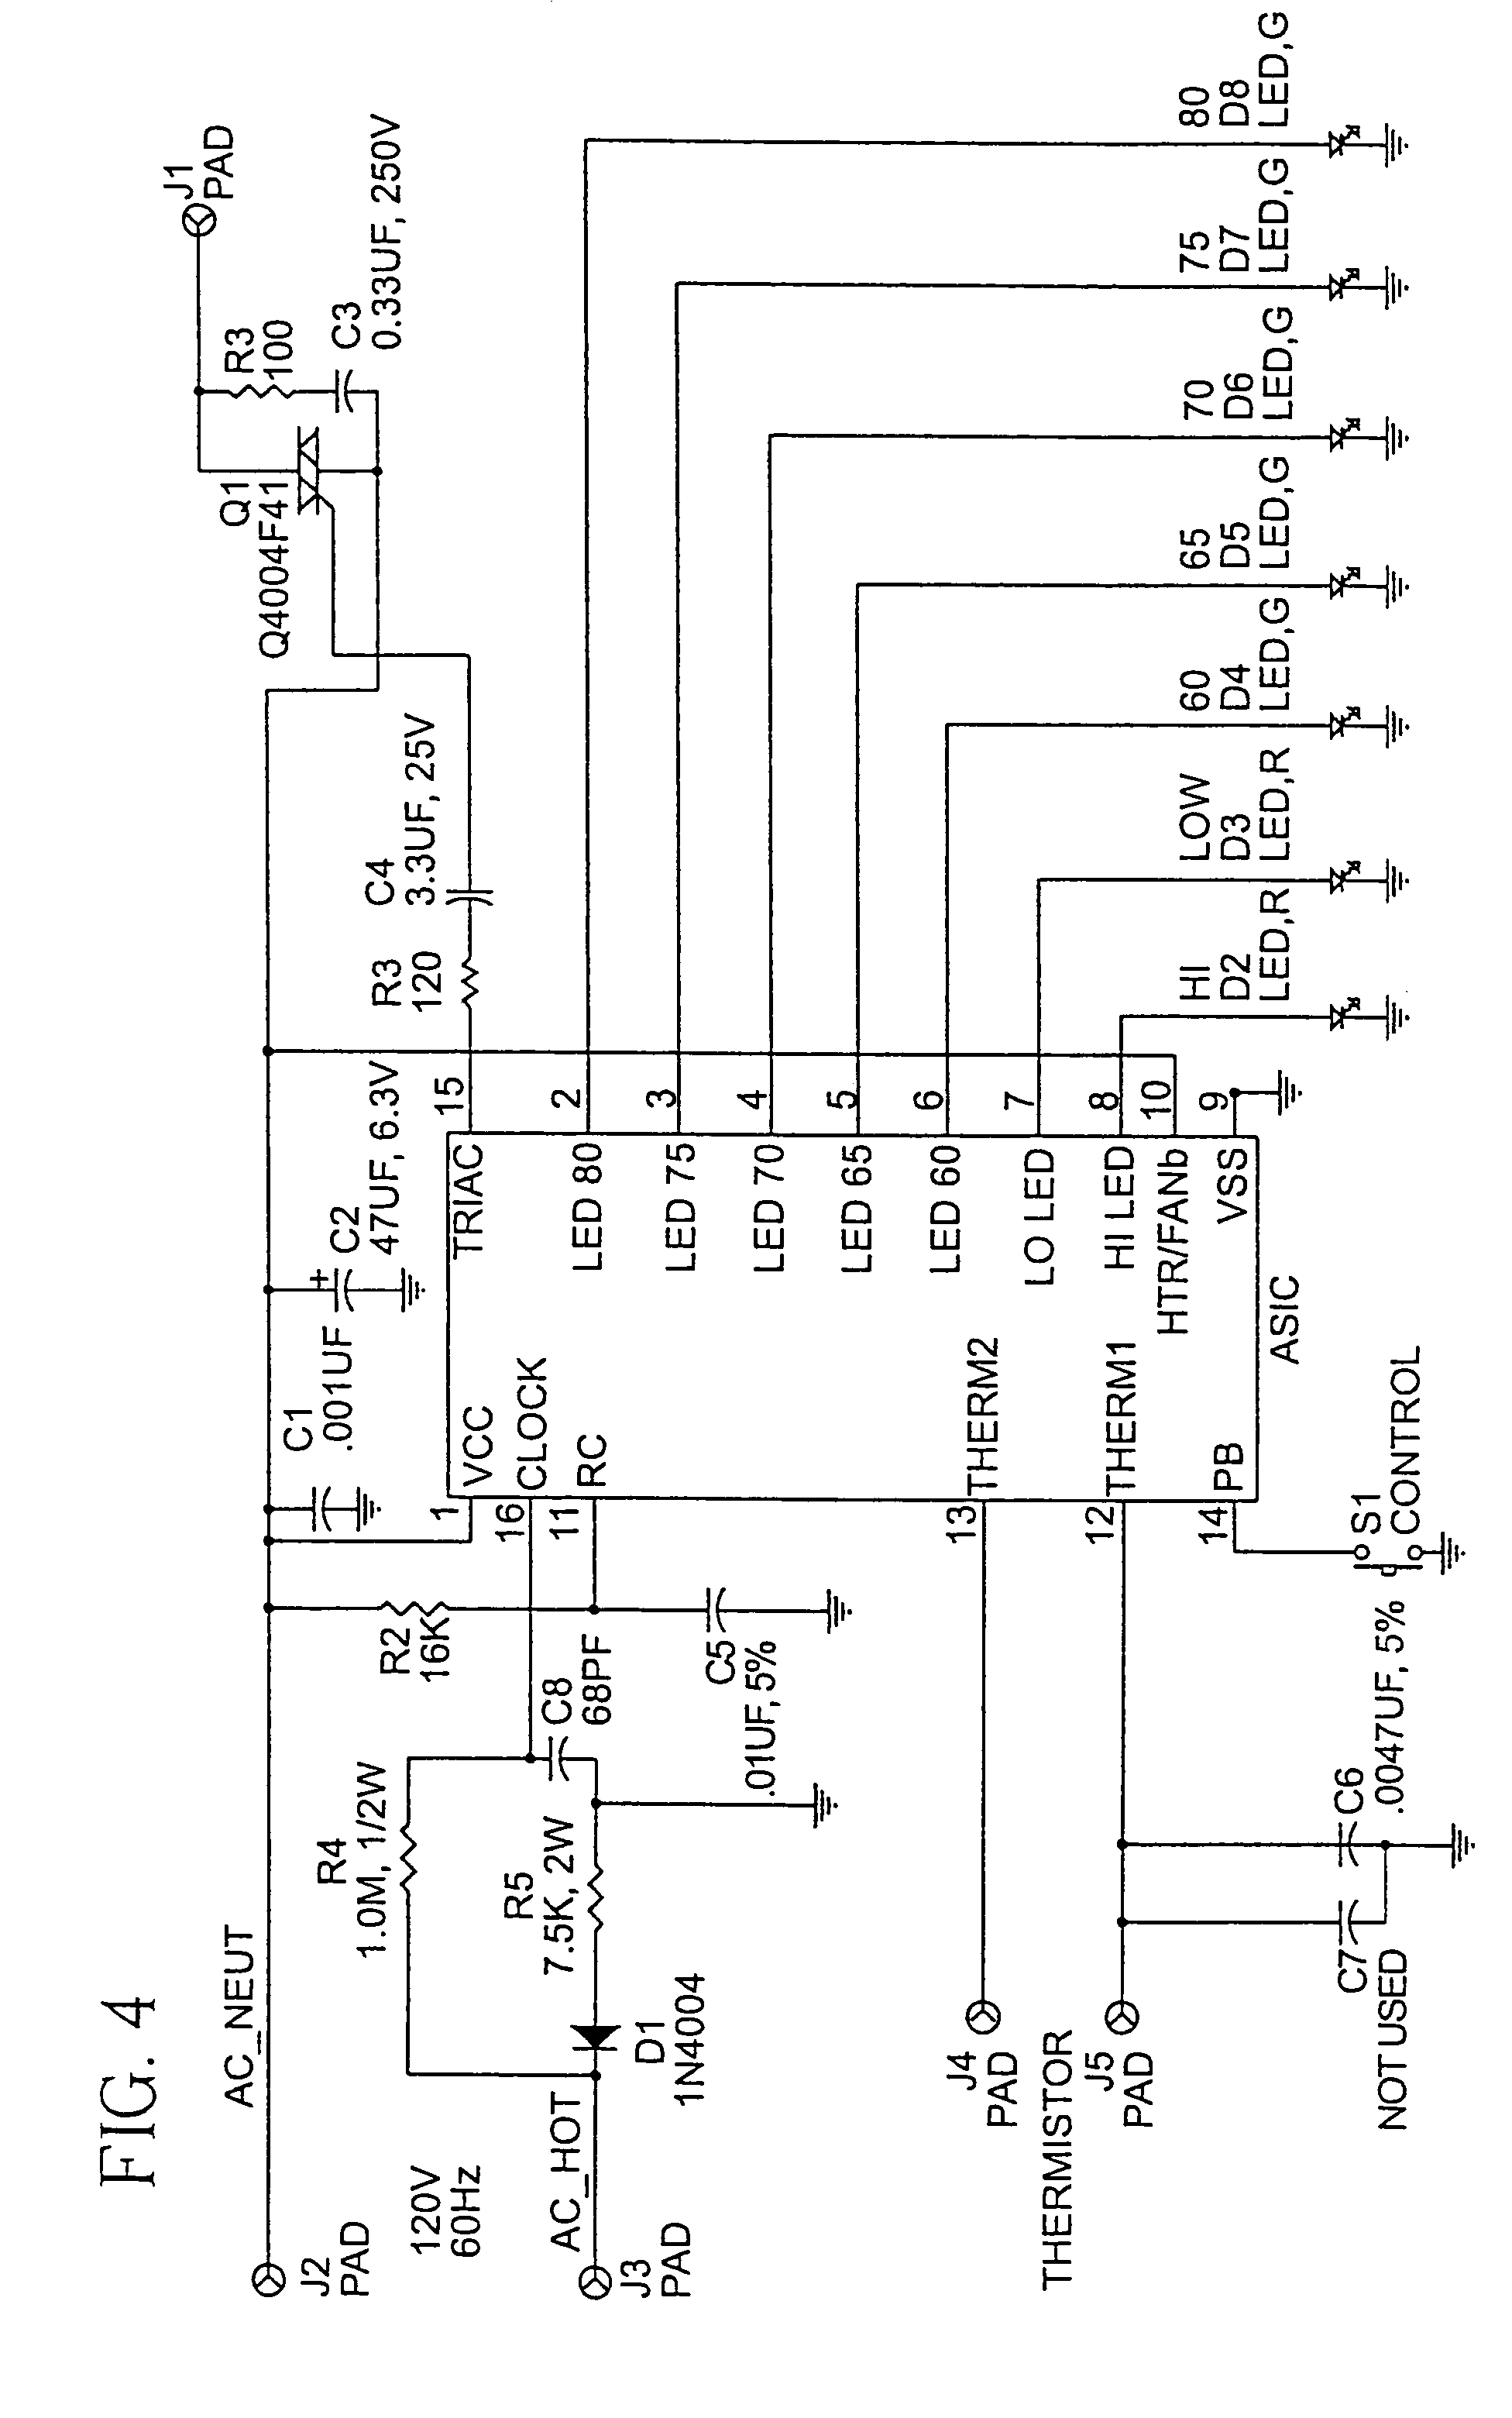 holmes 1 touch heater wiring diagram